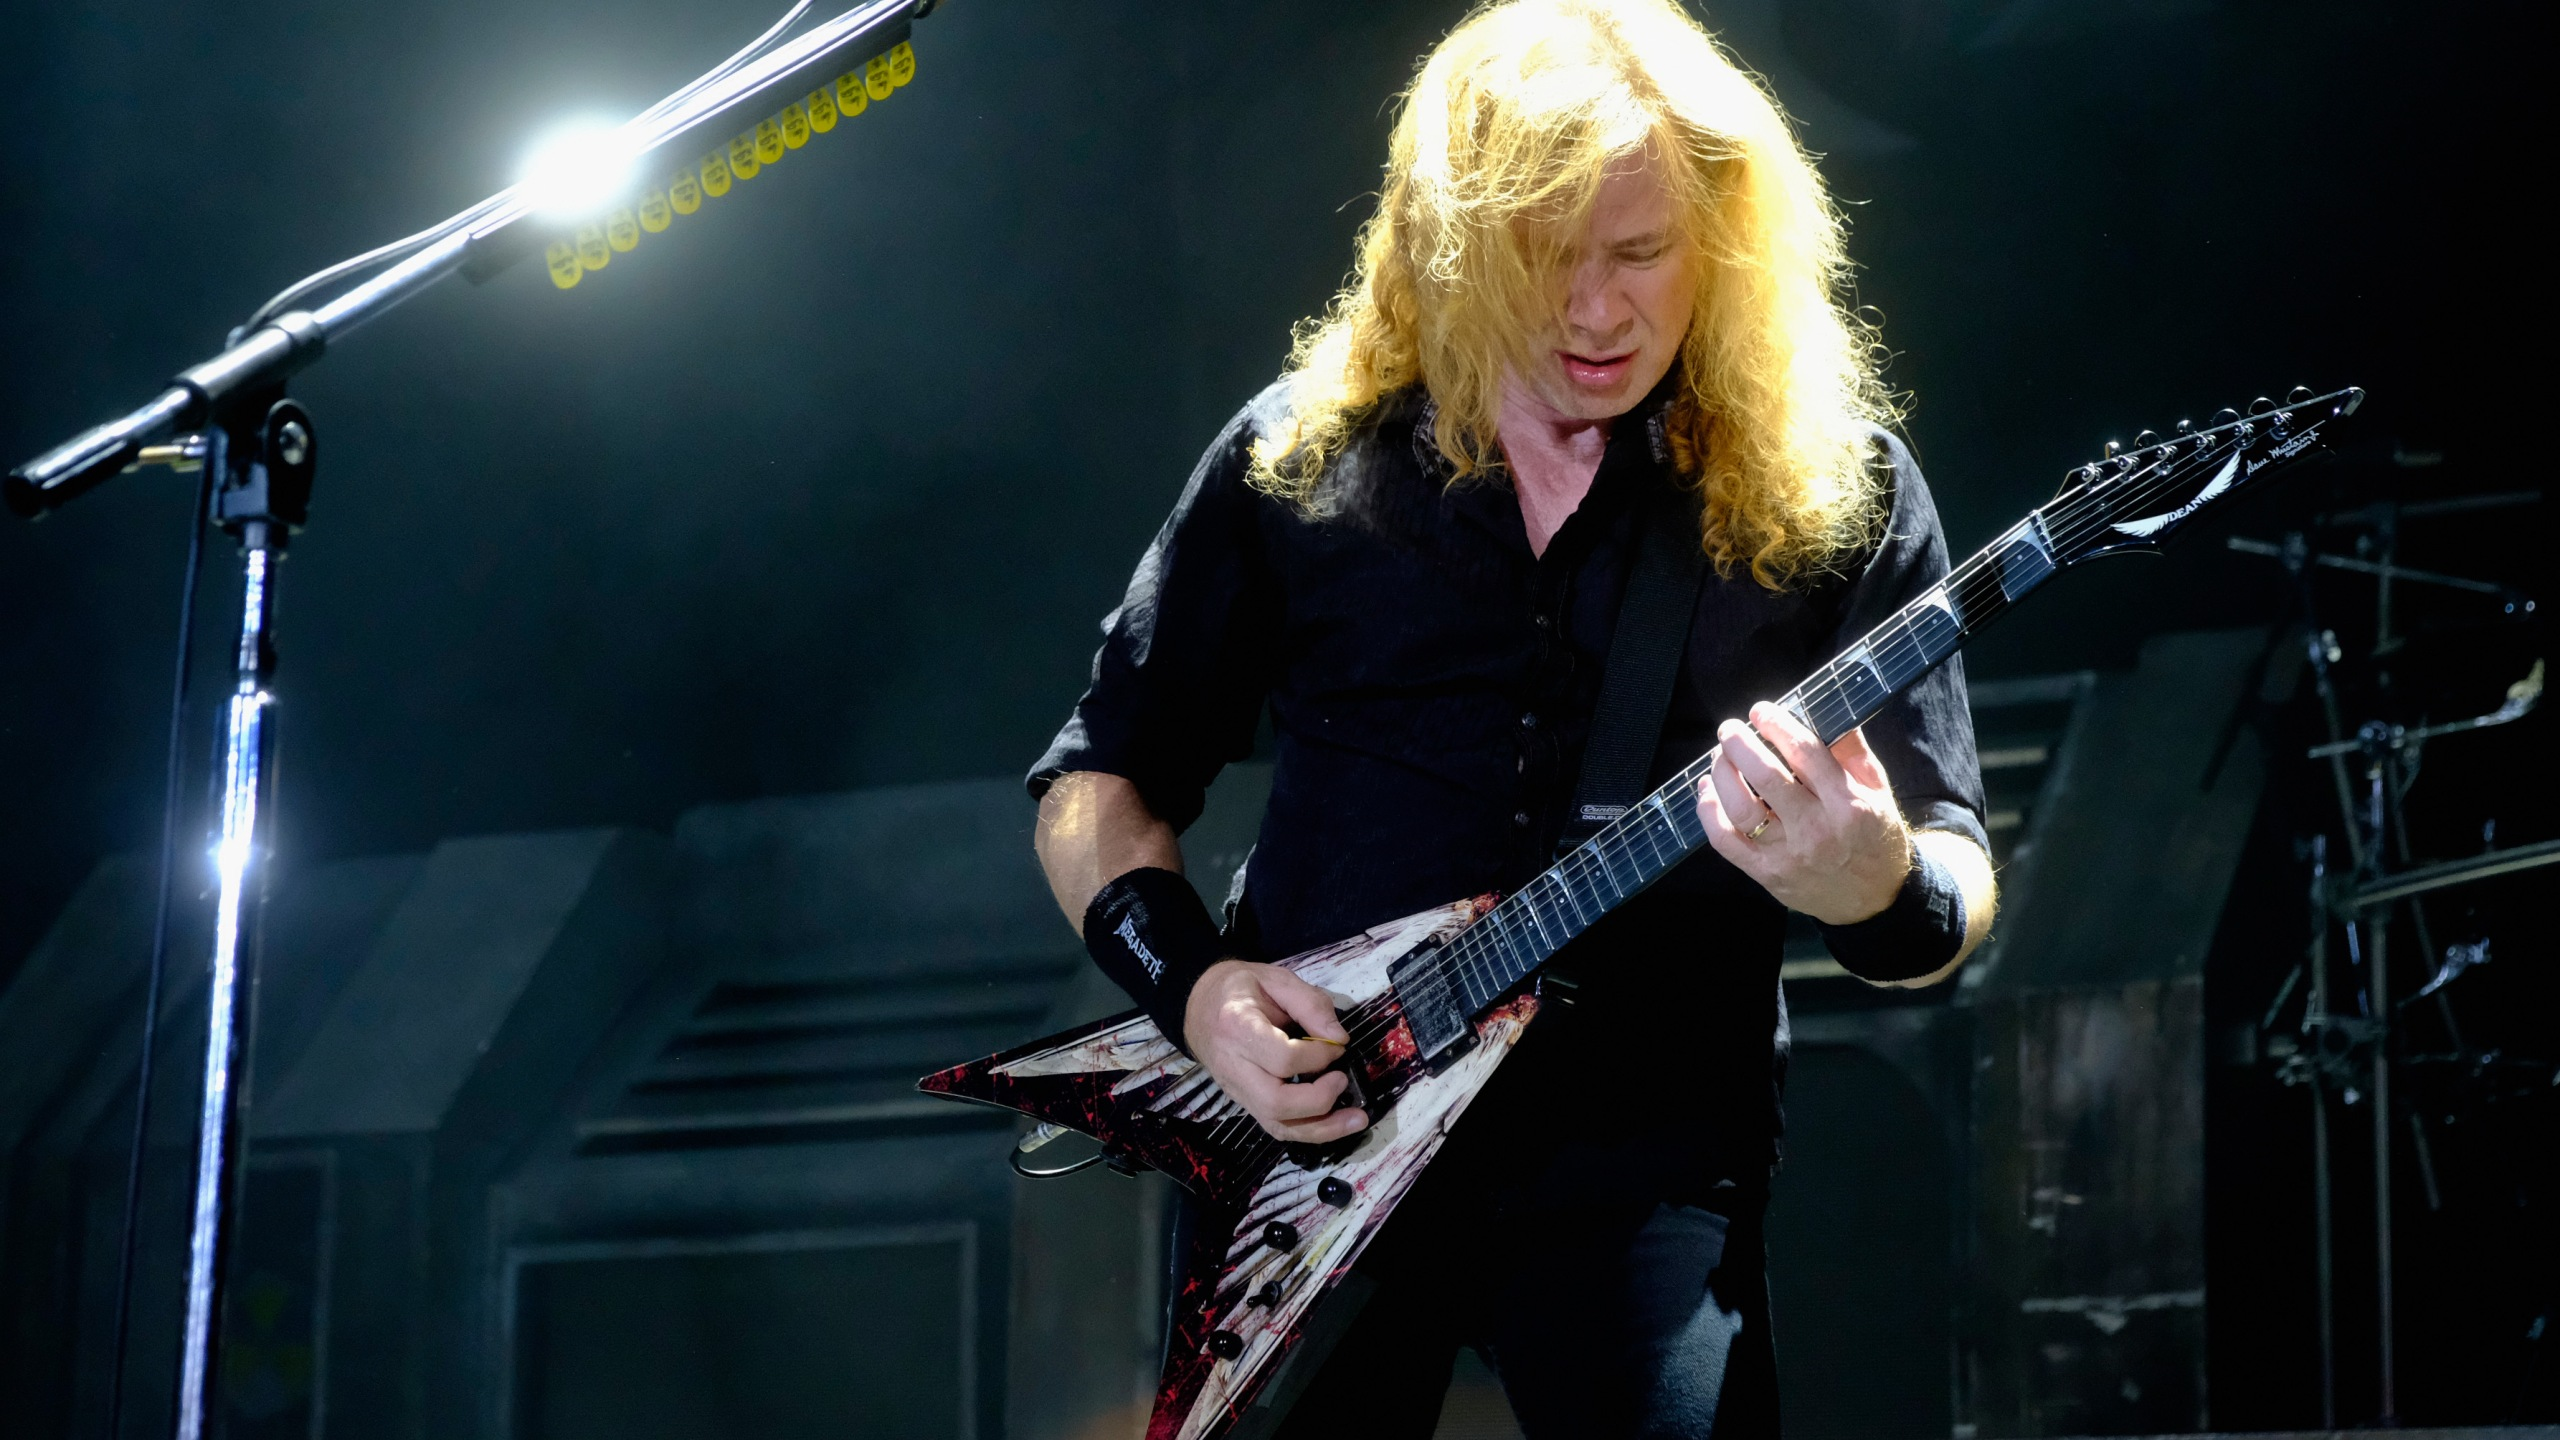 Dave Mustaine of Megadeath performs at Ozzfest at the San Manuel Amphitheater on September 24, 2016 in Los Angeles, California. (Photo by Frazer Harrison/Getty Images for ABA)